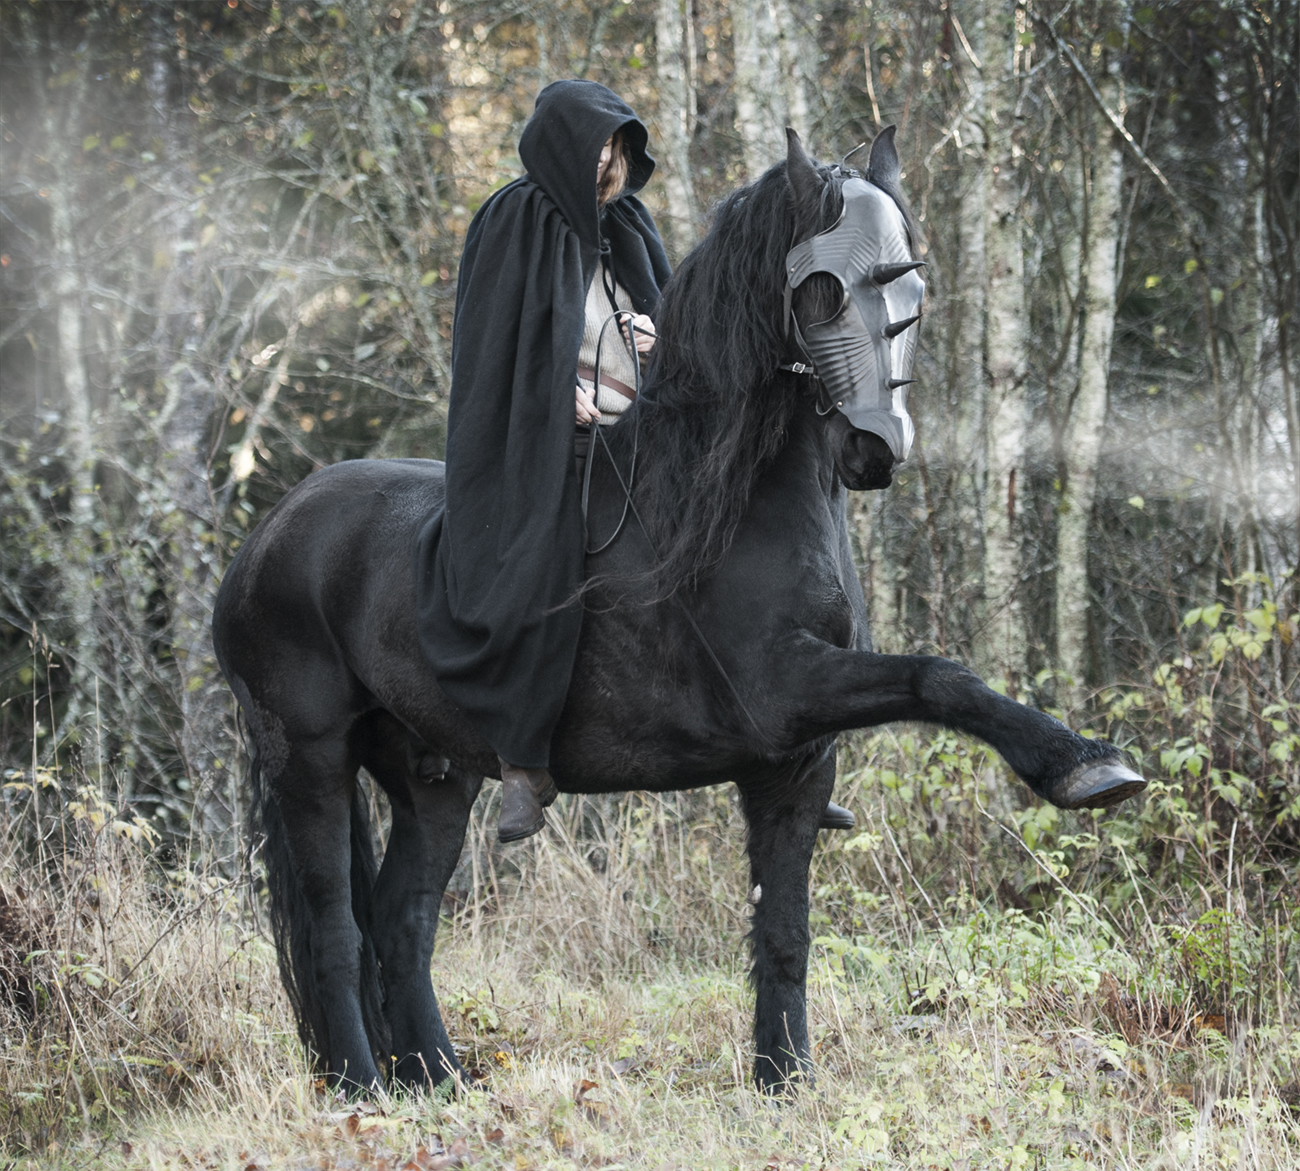 Black Horses In Lord Of The Rings